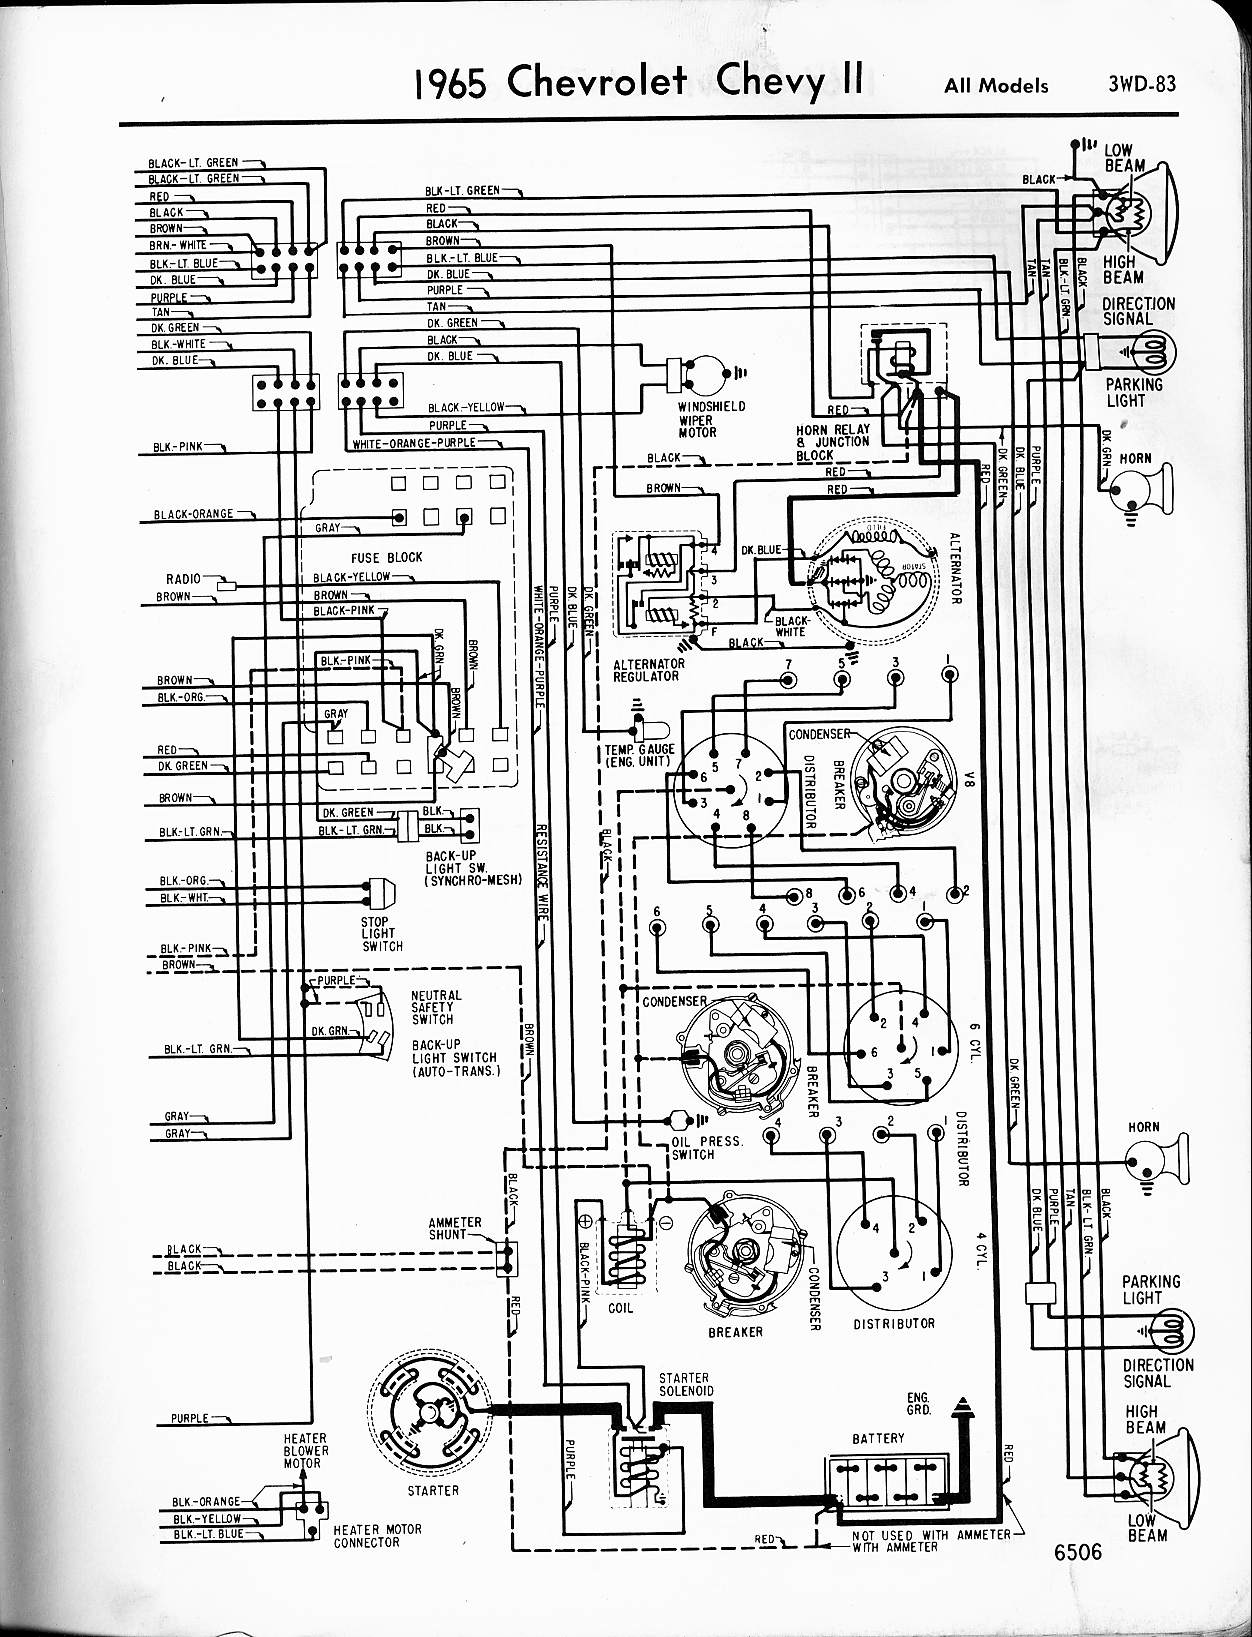 1964 Mustang Wiring Diagram For Headlights - Complete Wiring Diagrams •